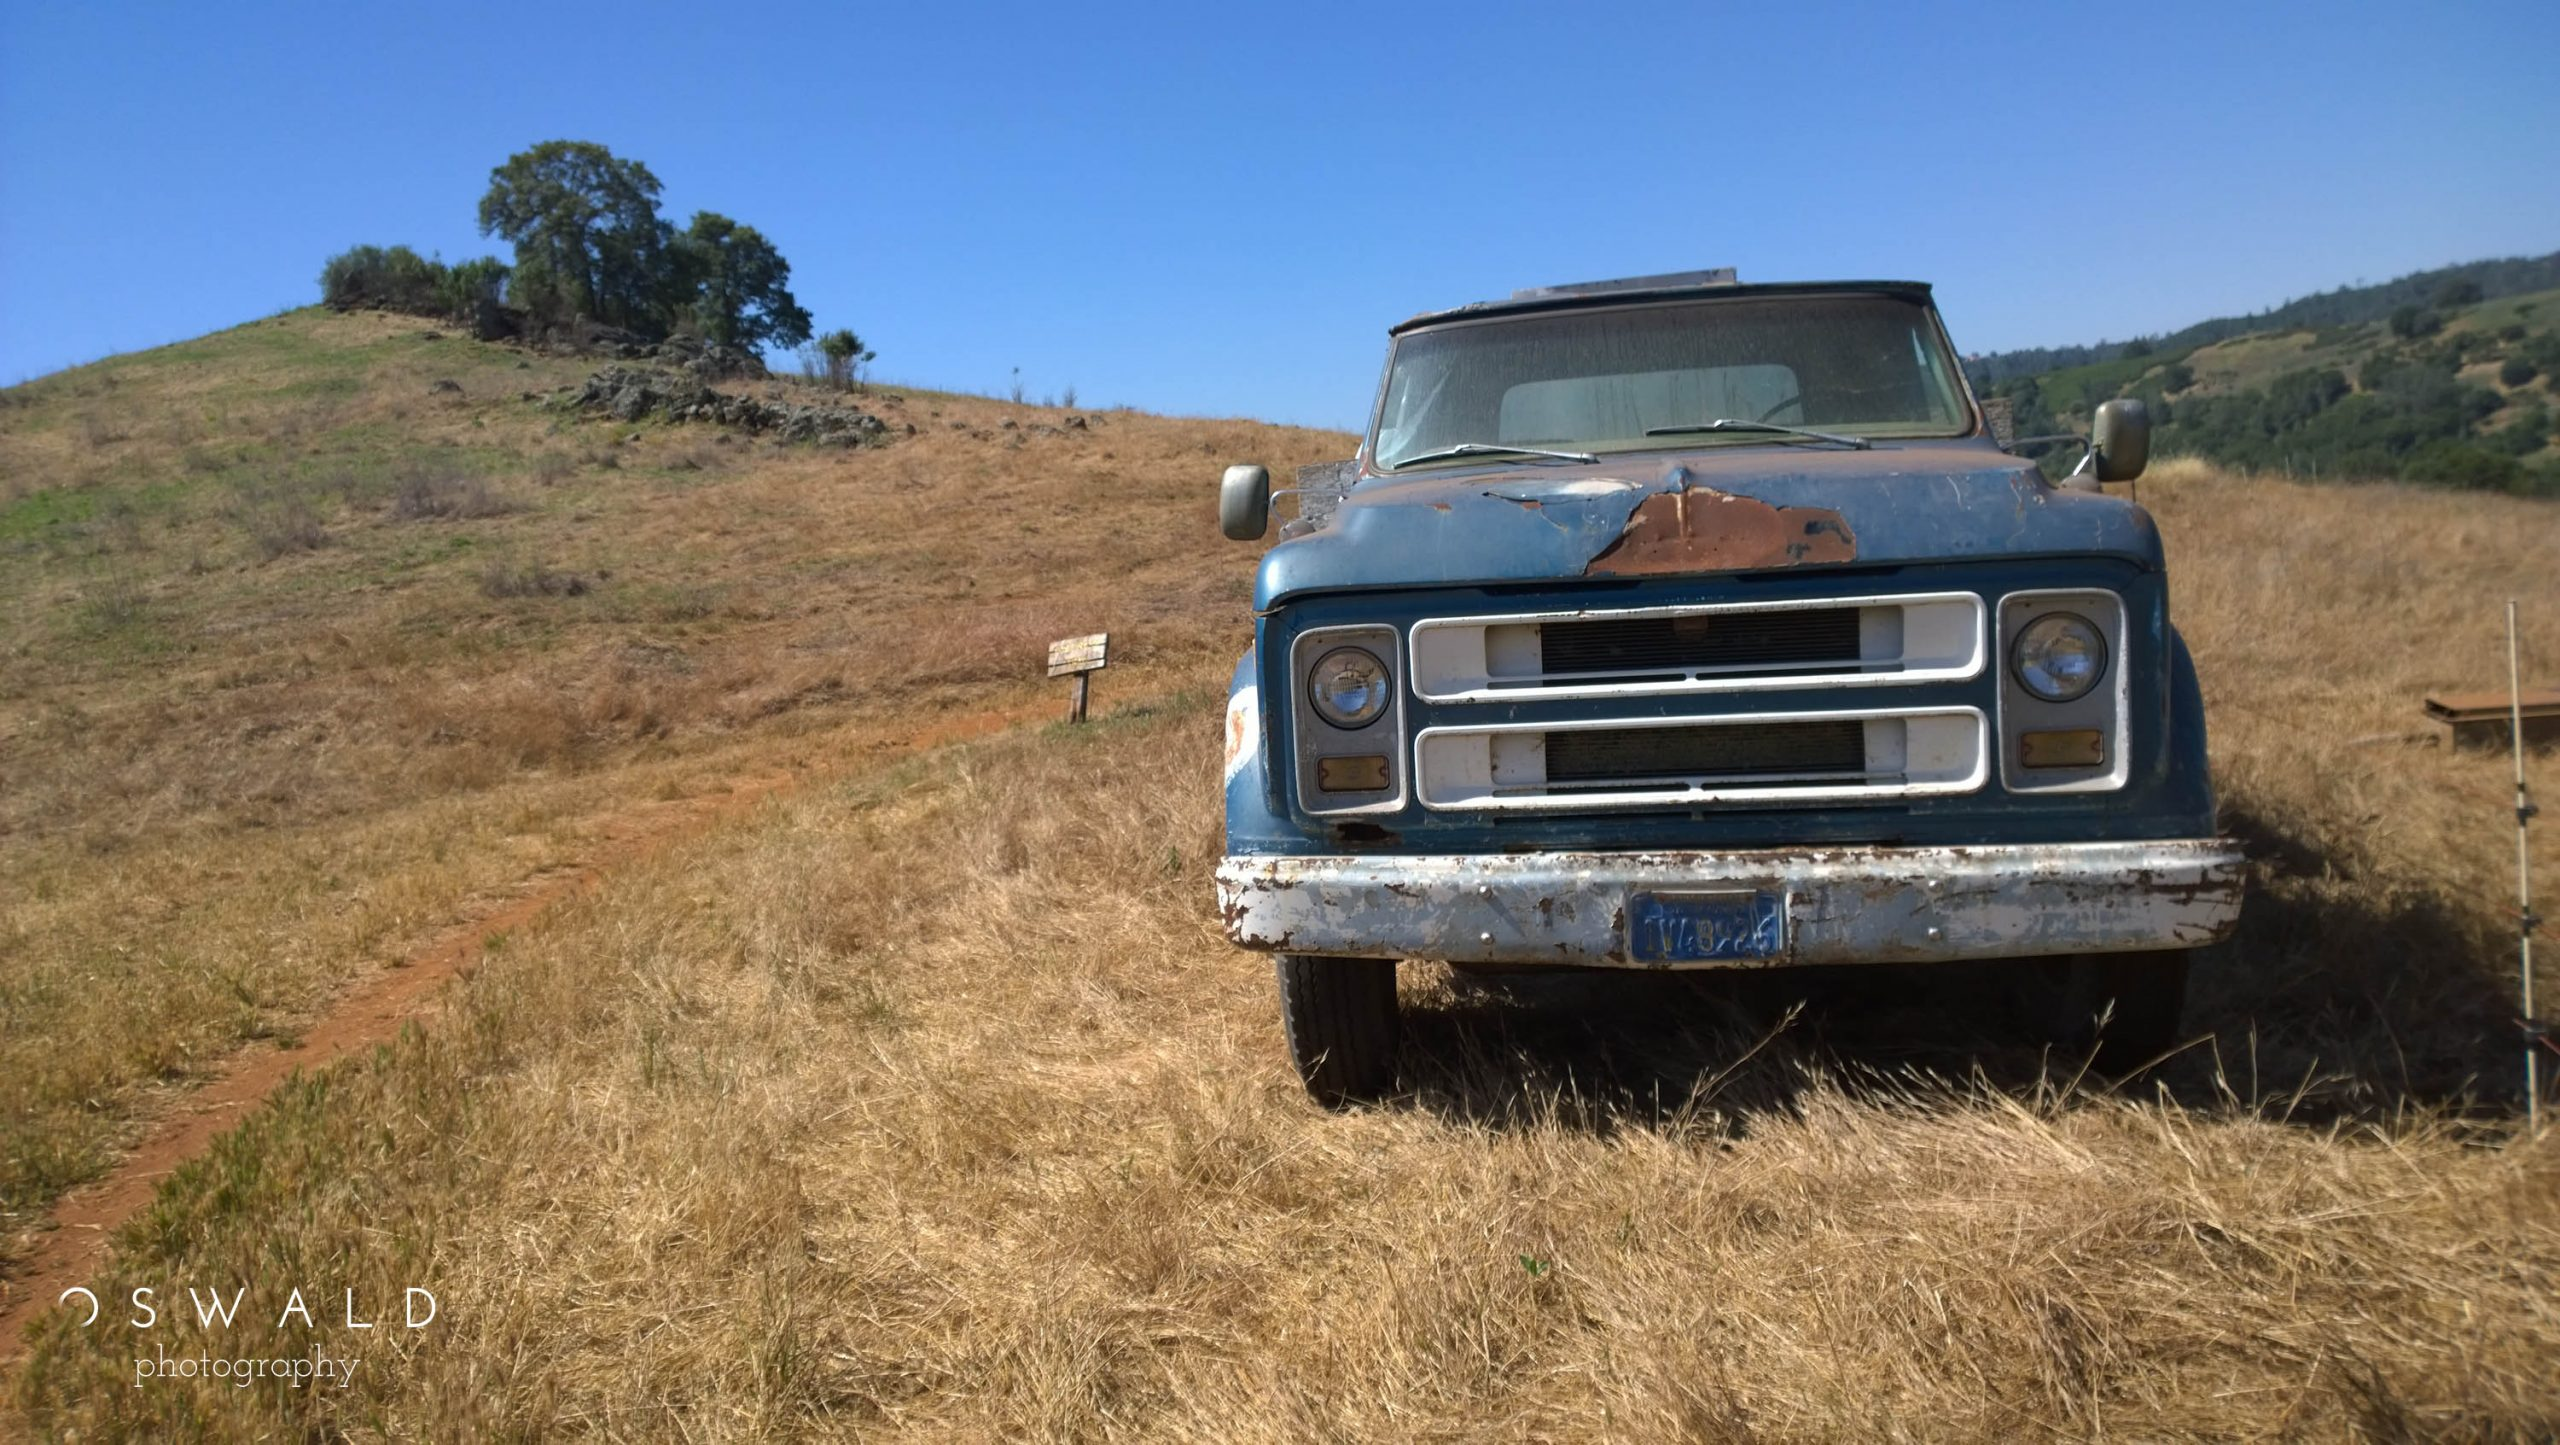 Photograph of a beat up old Chevrolet truck at Cronan Ranch Regional Park in Northern California.